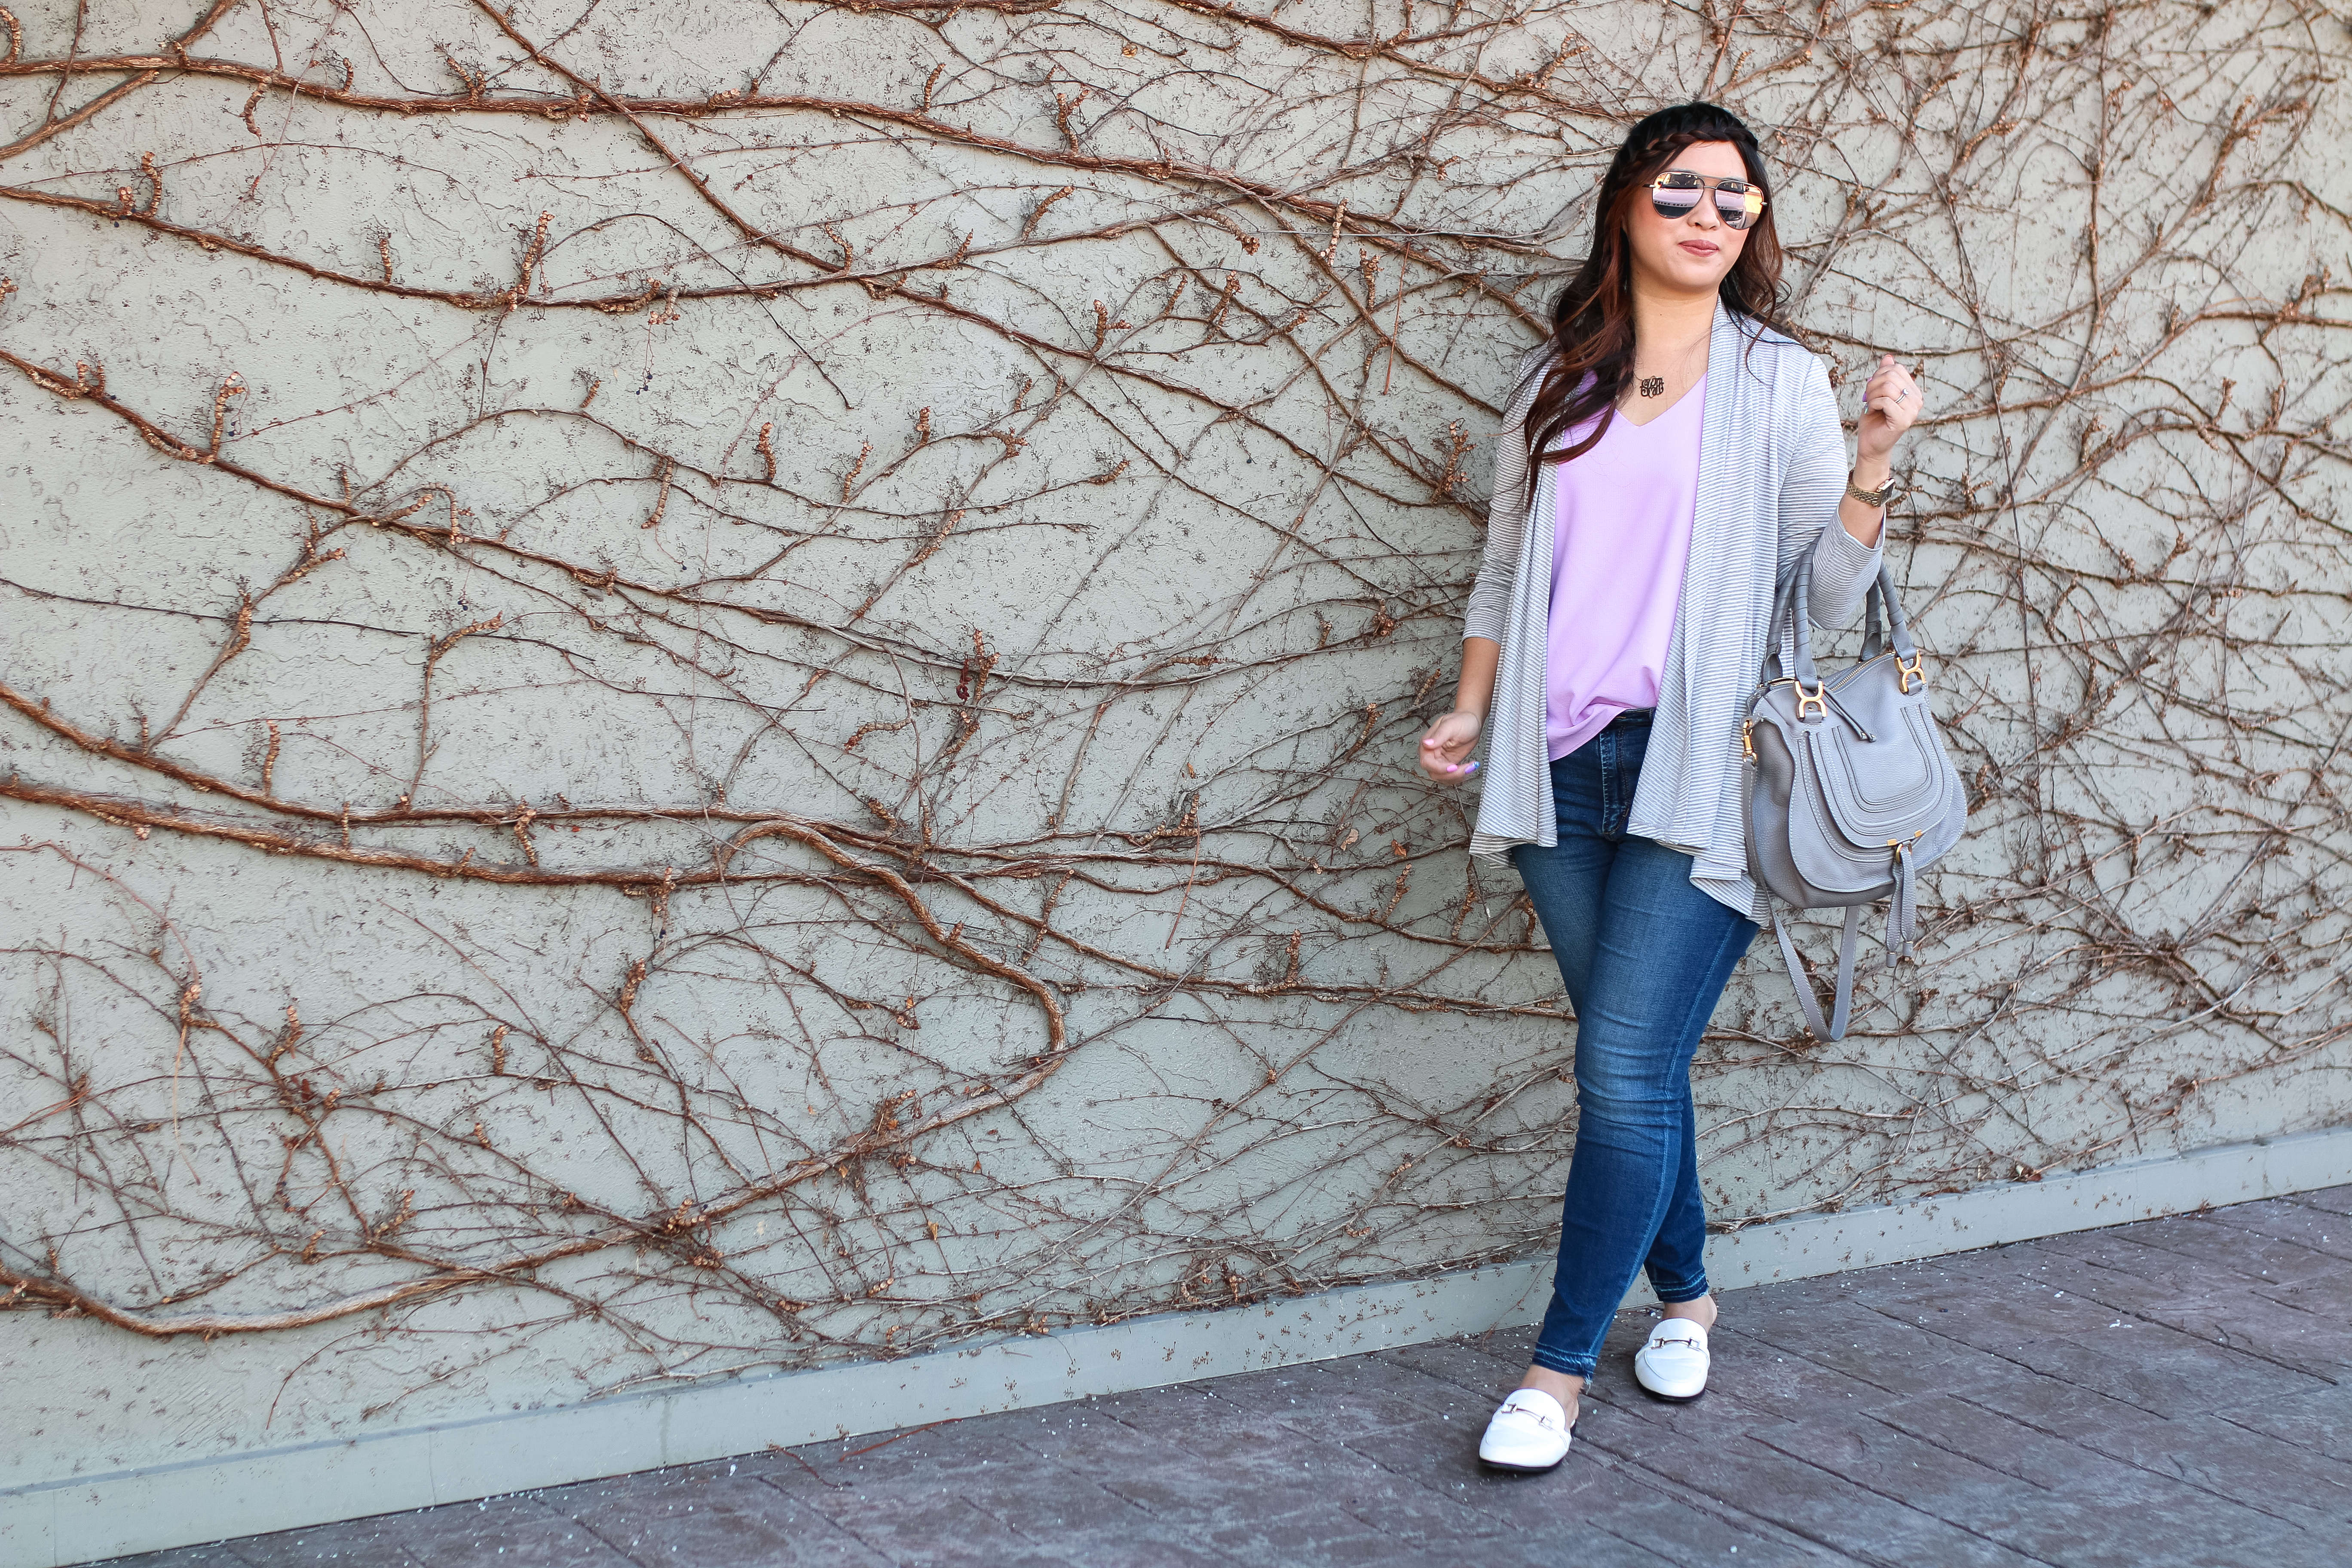 New Nordstrom Brand: 5 Pieces You Will Love From The Gibson x Living in Yellow Collection! by popular Utah fashion blogger Sandy A La Mode